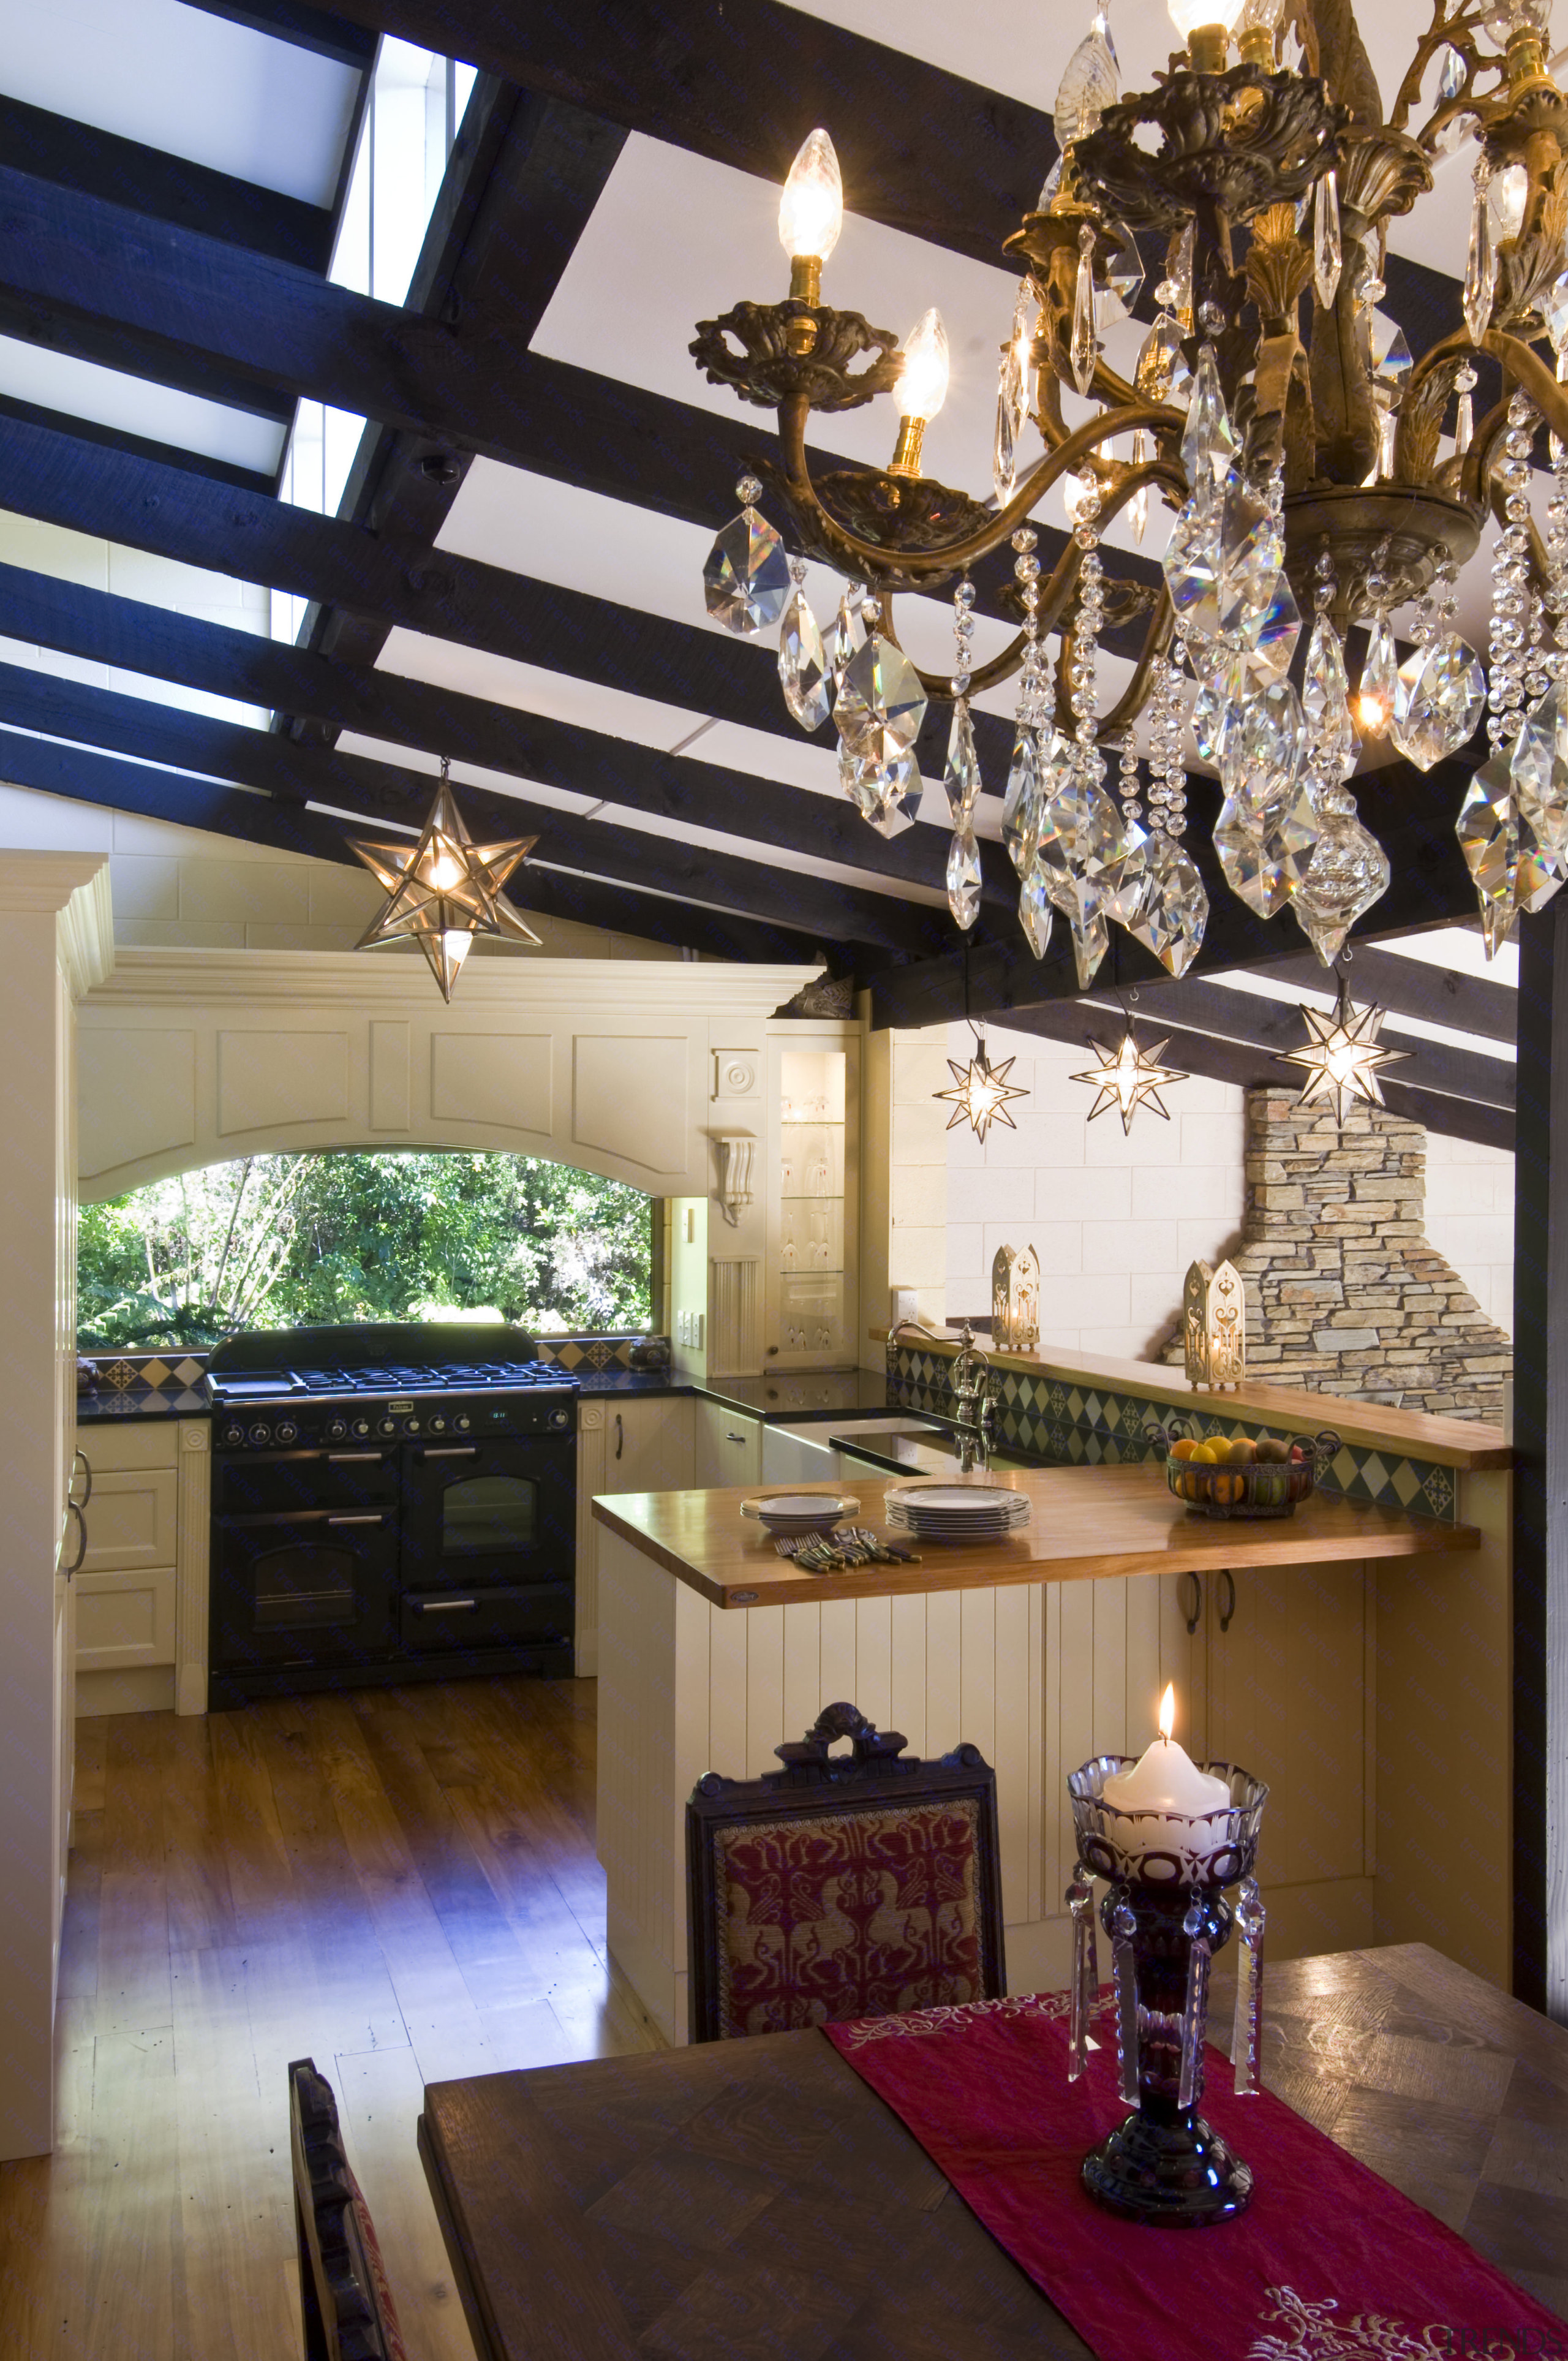 Kitchen Features Dark Stained Beams, Large Walk In Pantry, Chandeliers, Classical